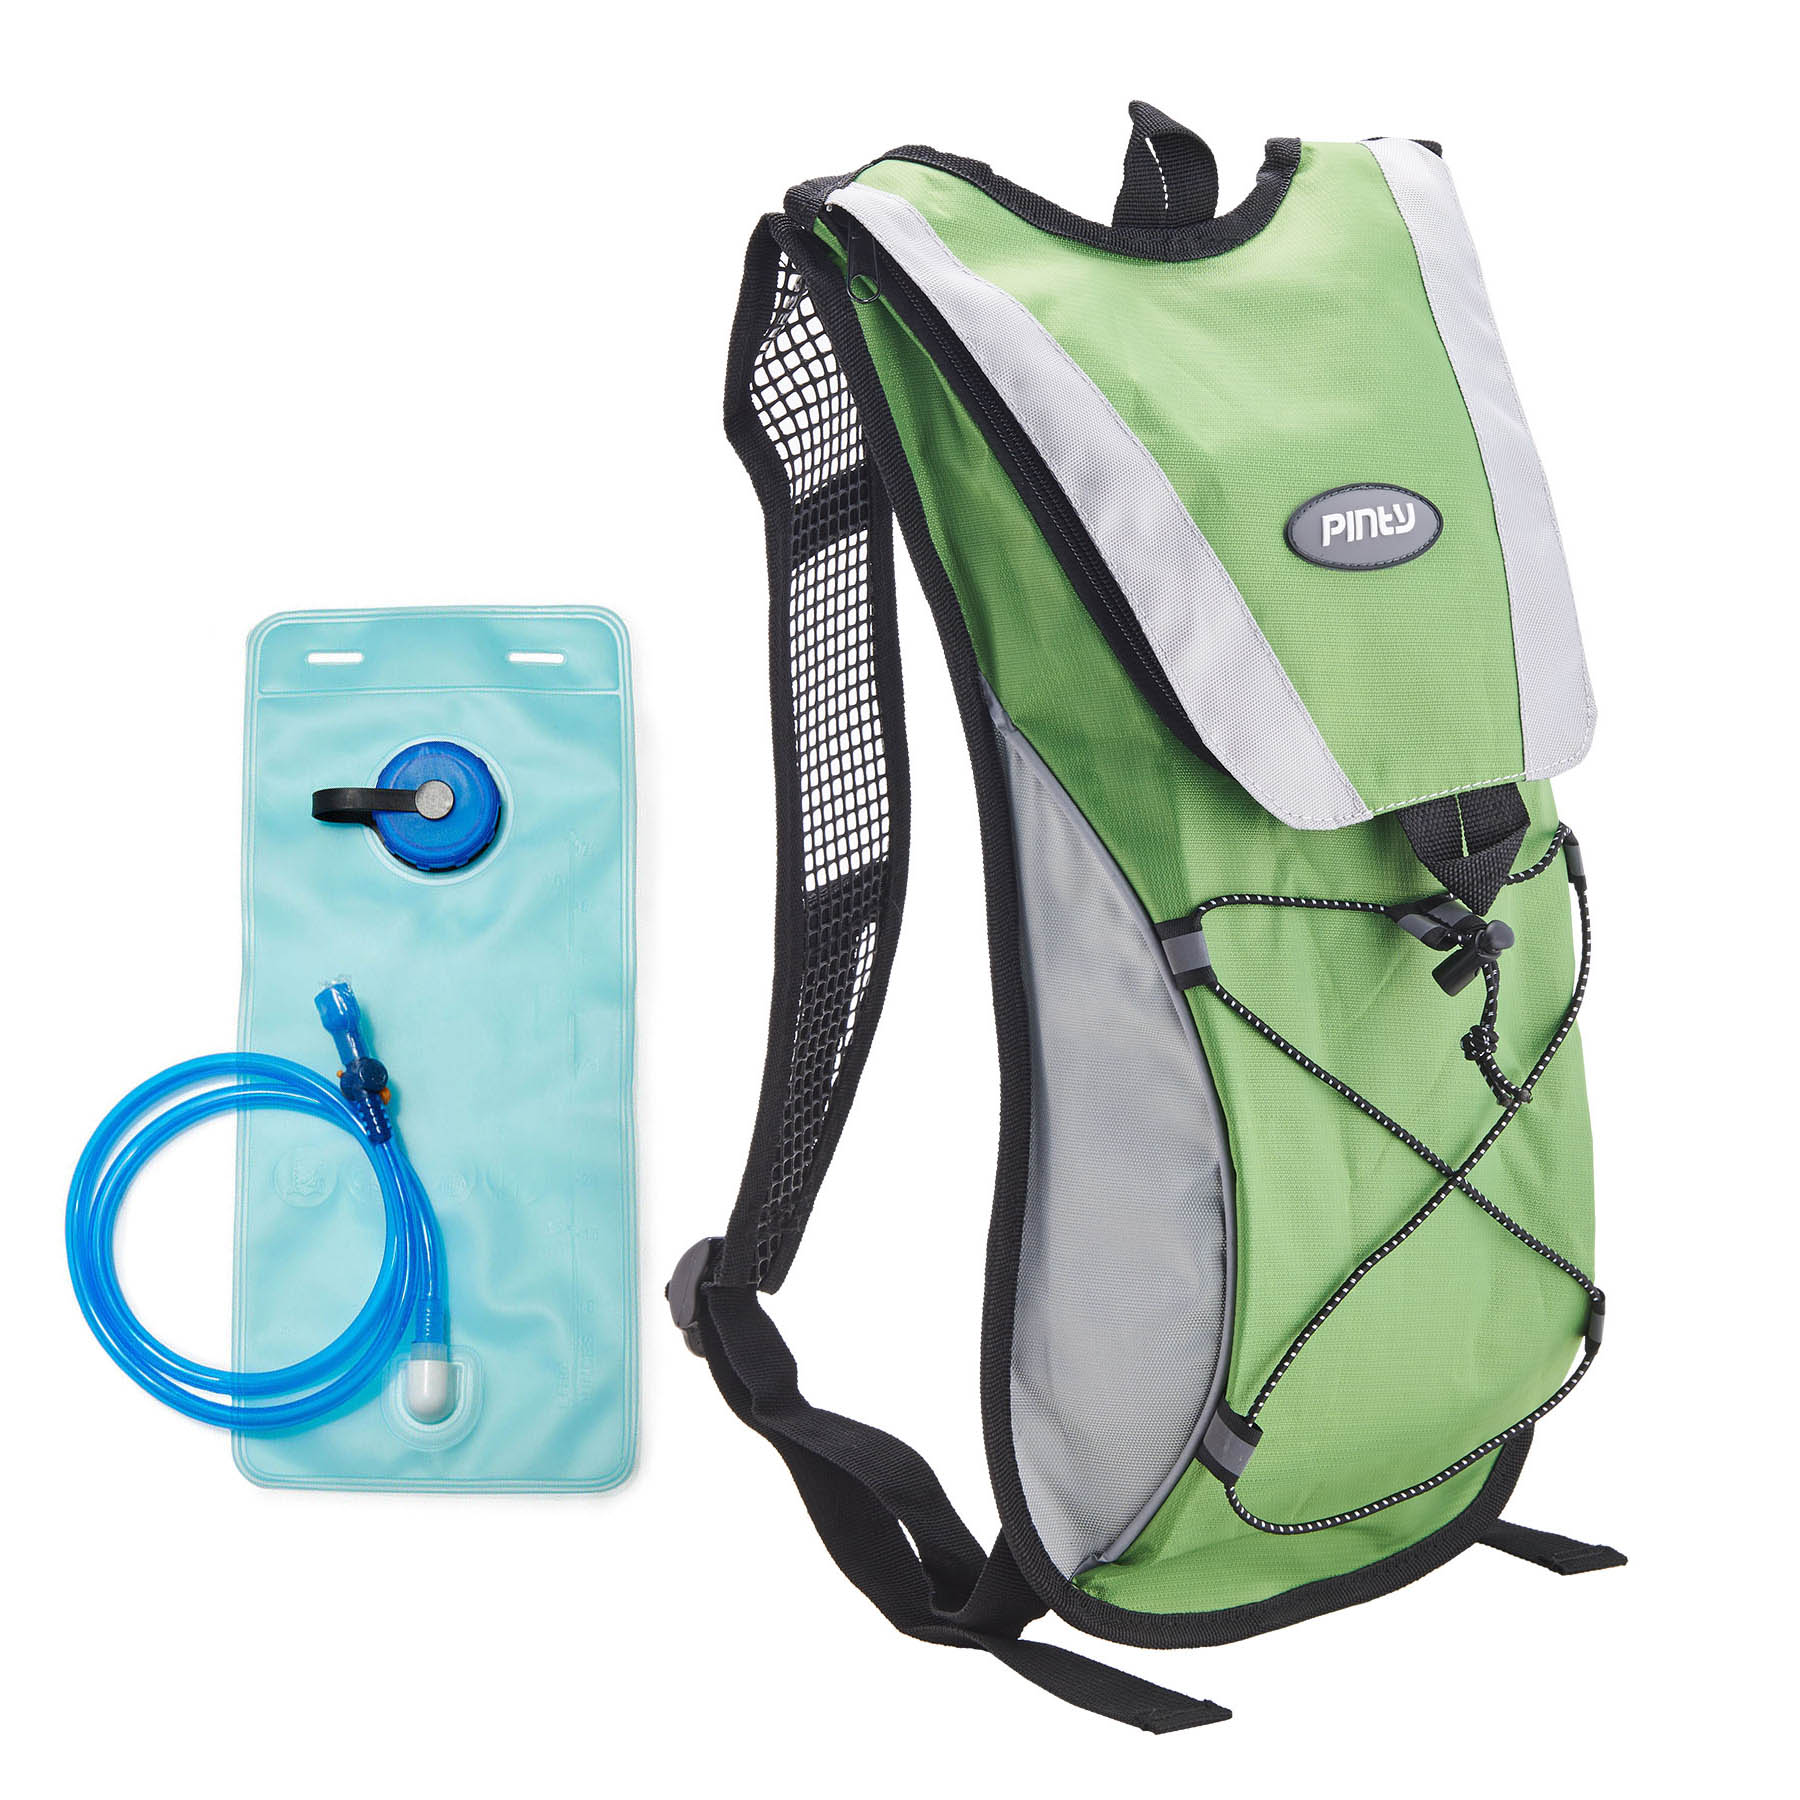 Pinty Premium Nylon Backpack with 2L Water Bladder Hydration Bag for Cycling Climbing Camping Green